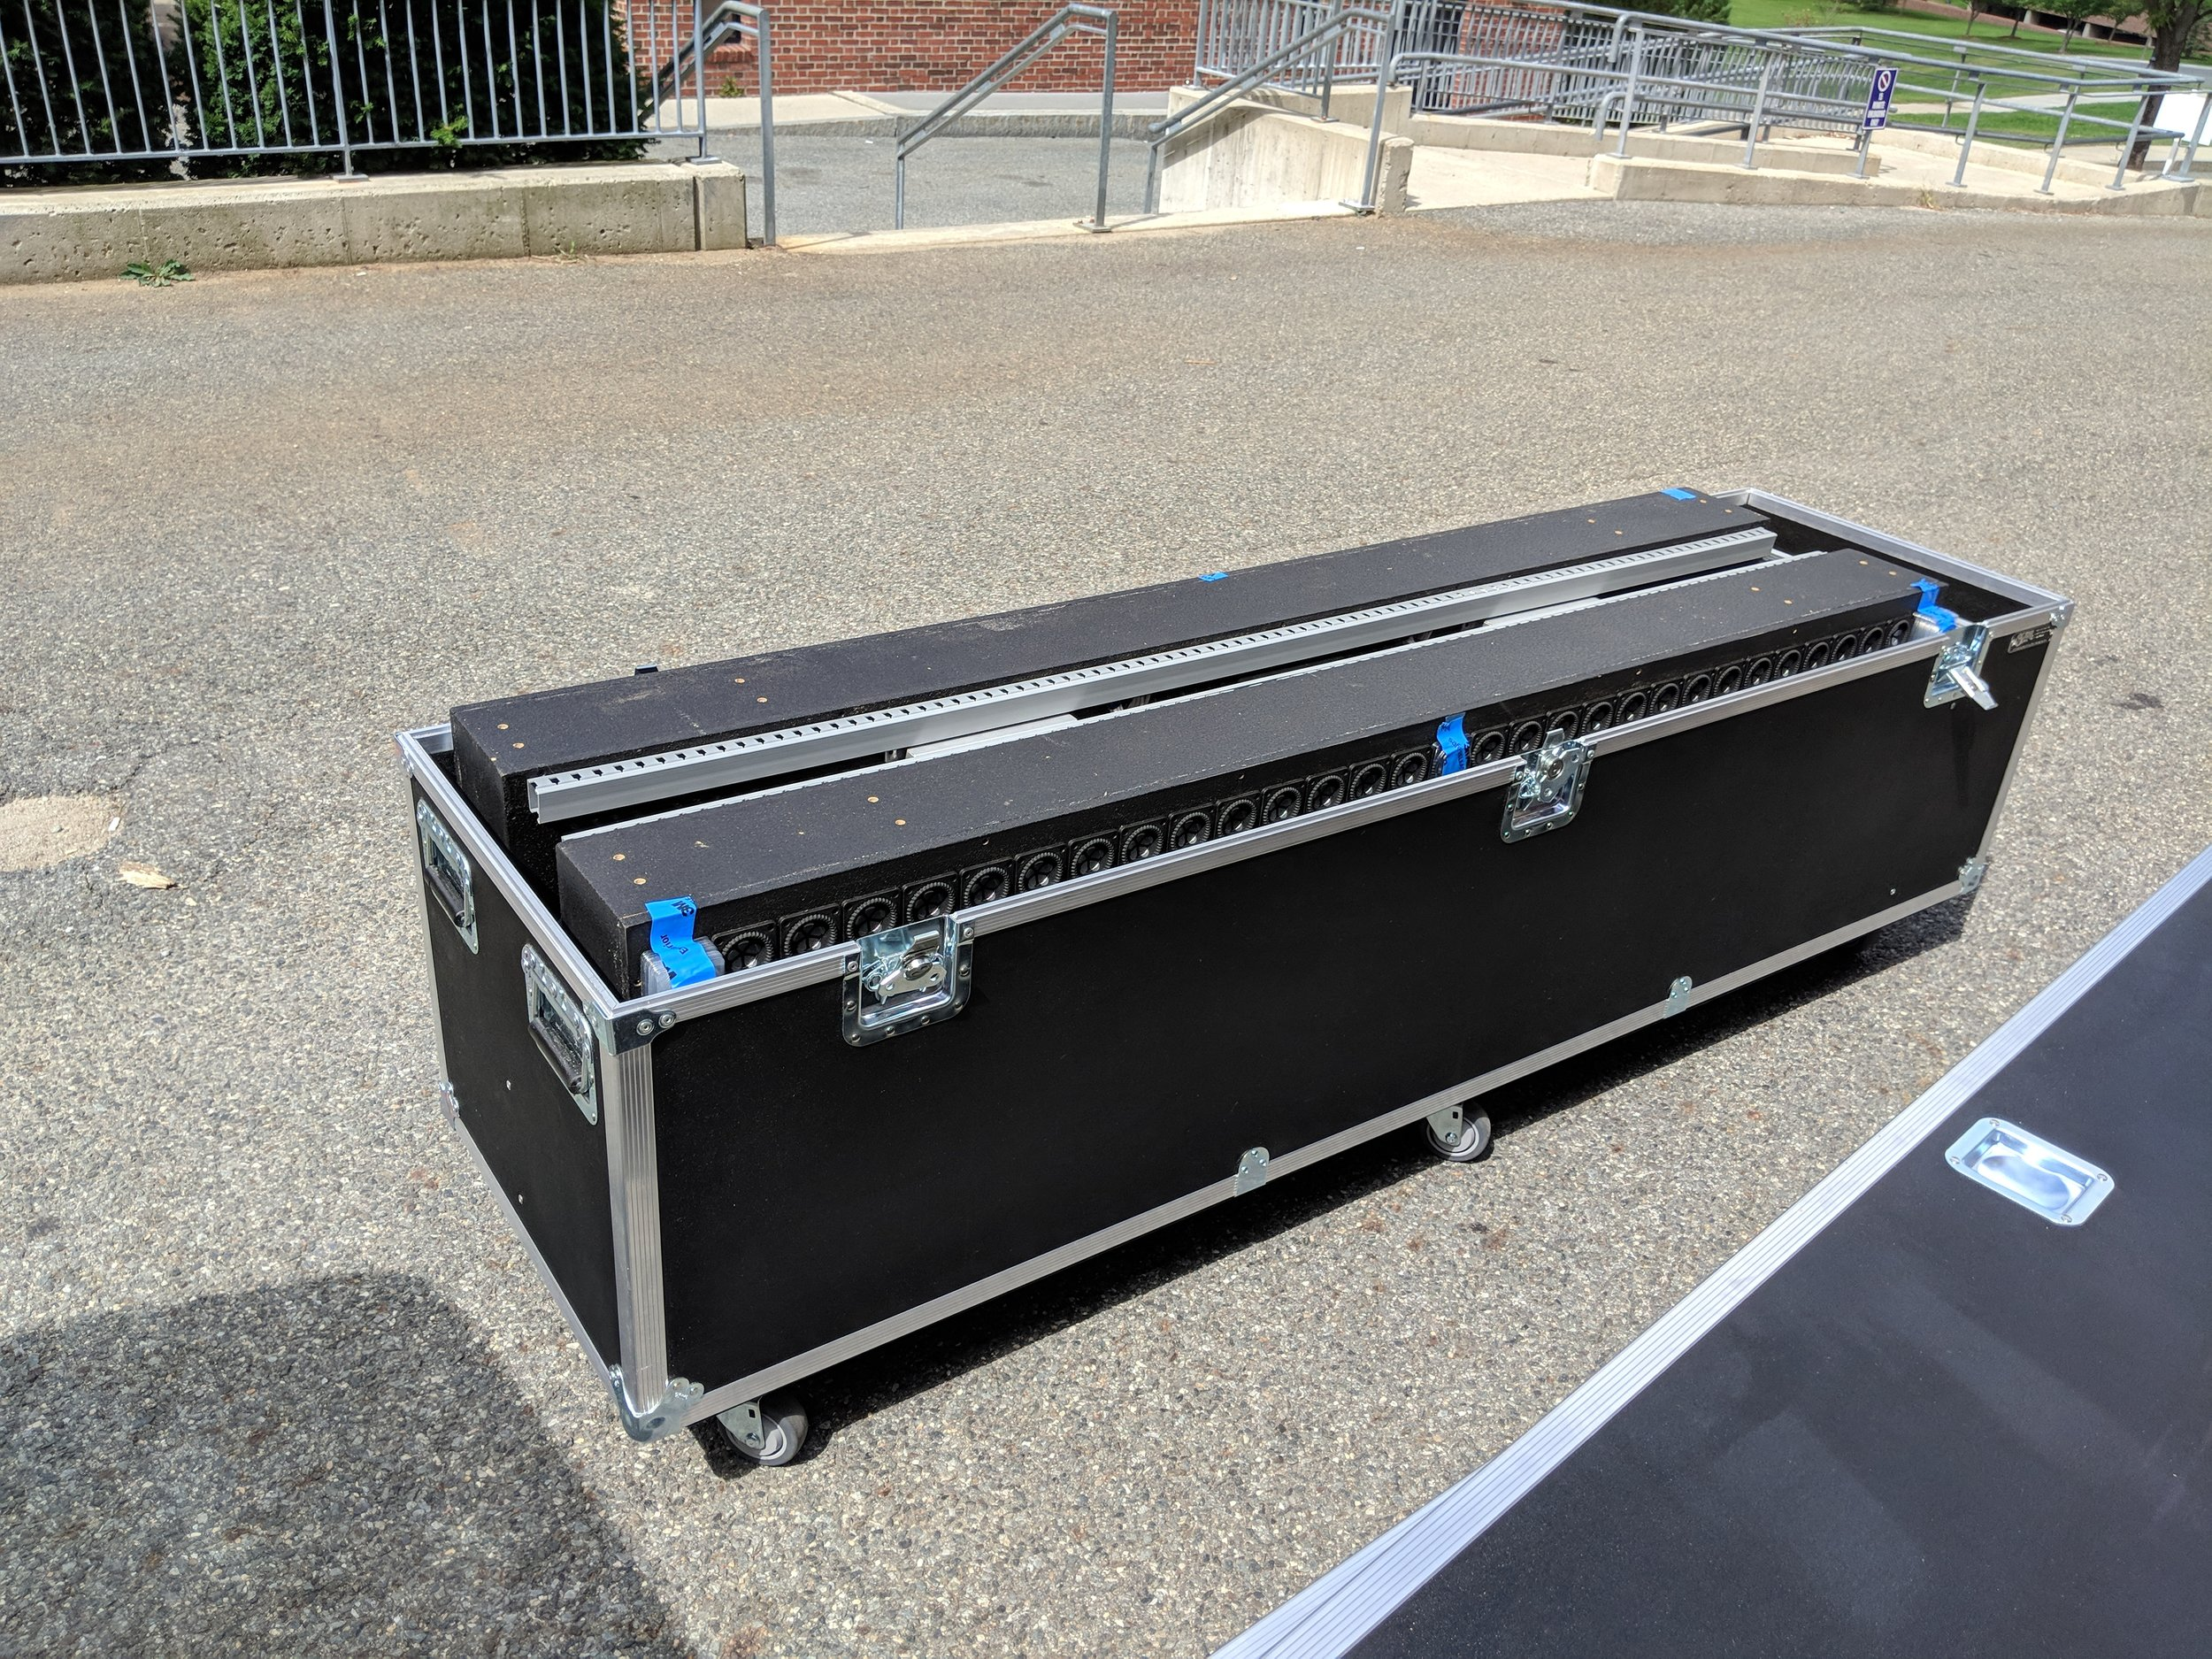 The arrays tour in road cases